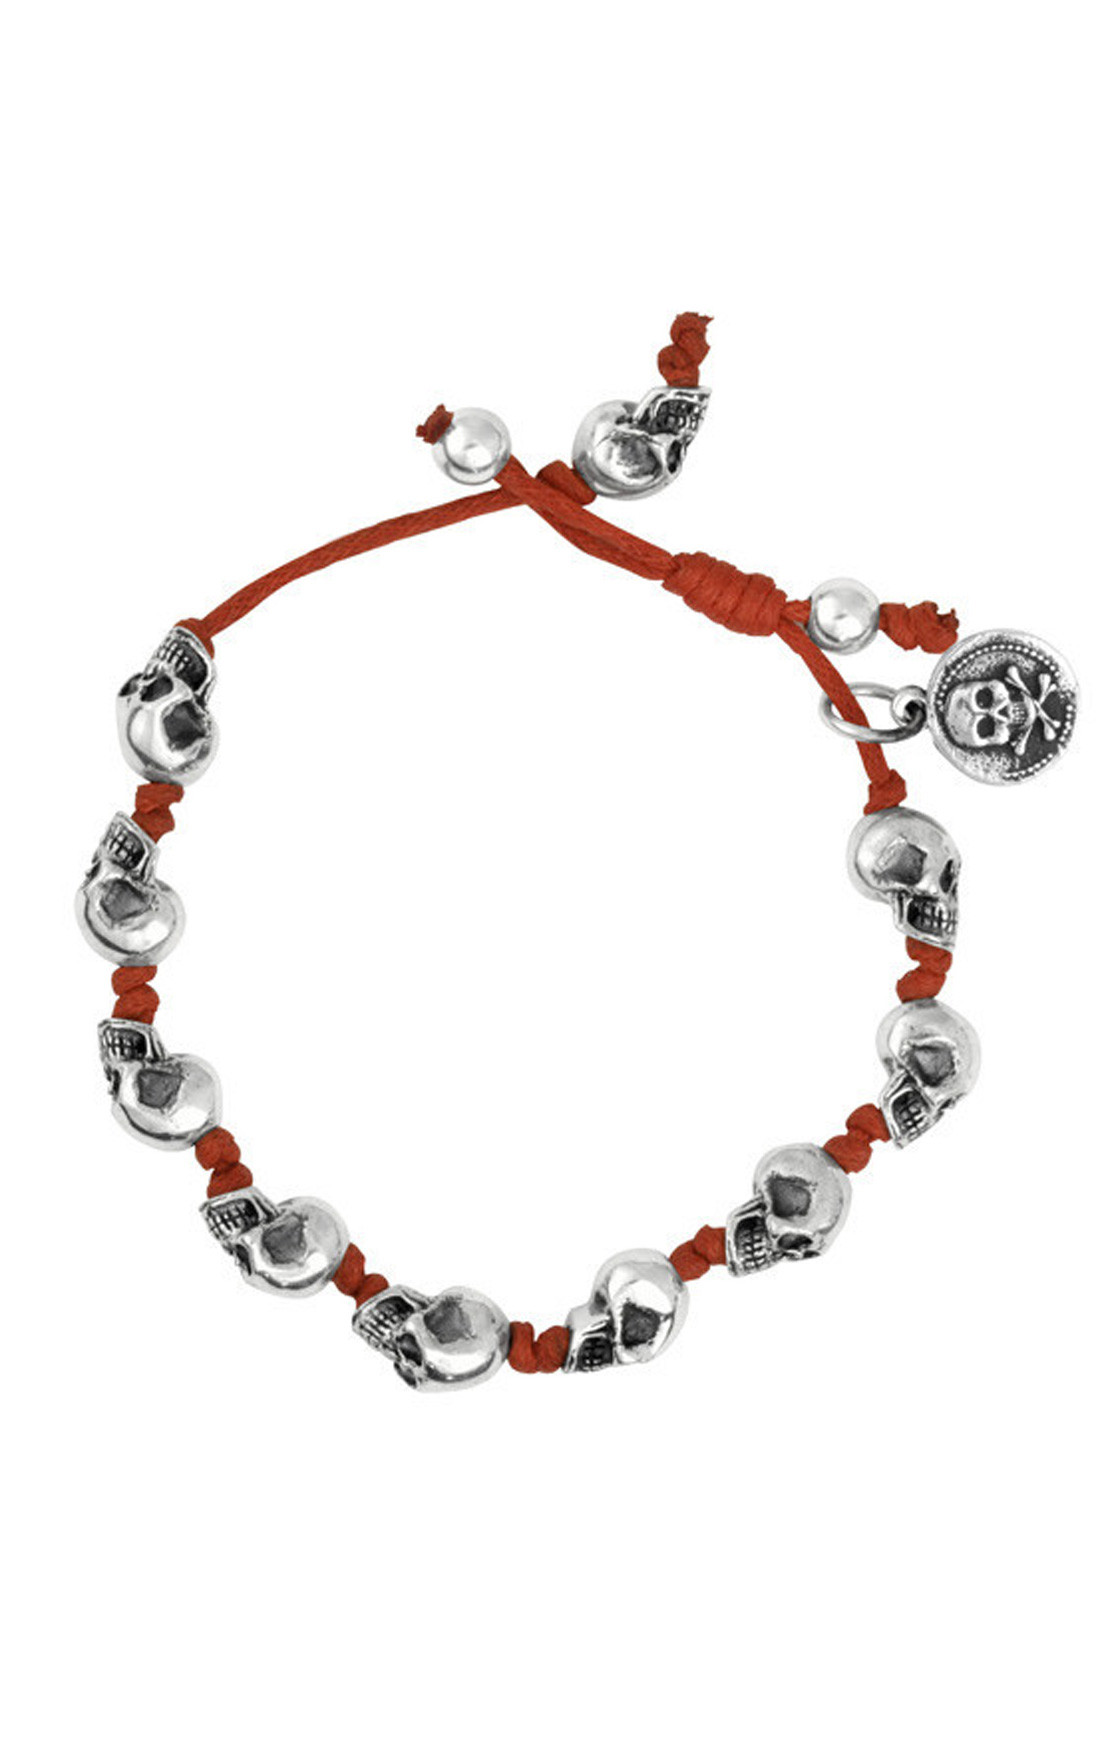 King Baby - Red Knotted Cord Bracelet with Small Skulls (K42-5426R)